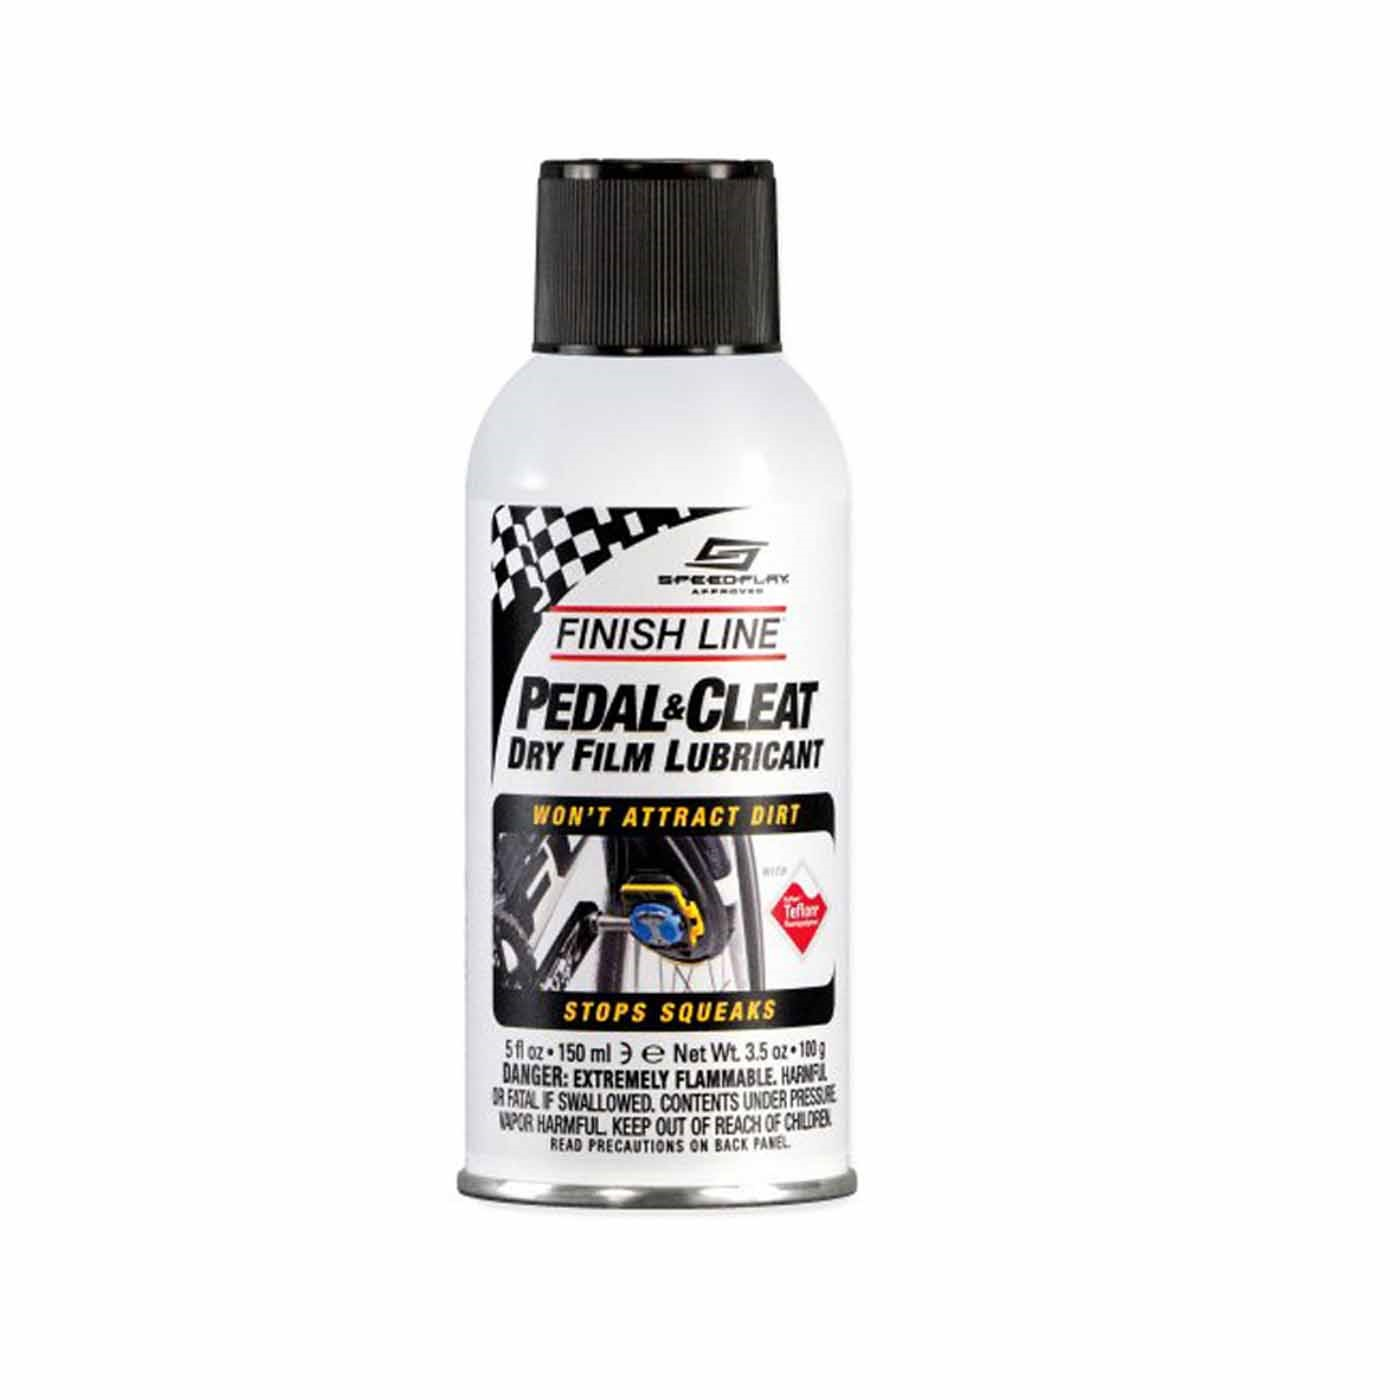 Lubricante FINISH LINE PEDAL&CLEAT para Pedales y Placas 5oz/148mL Spray PCL050101